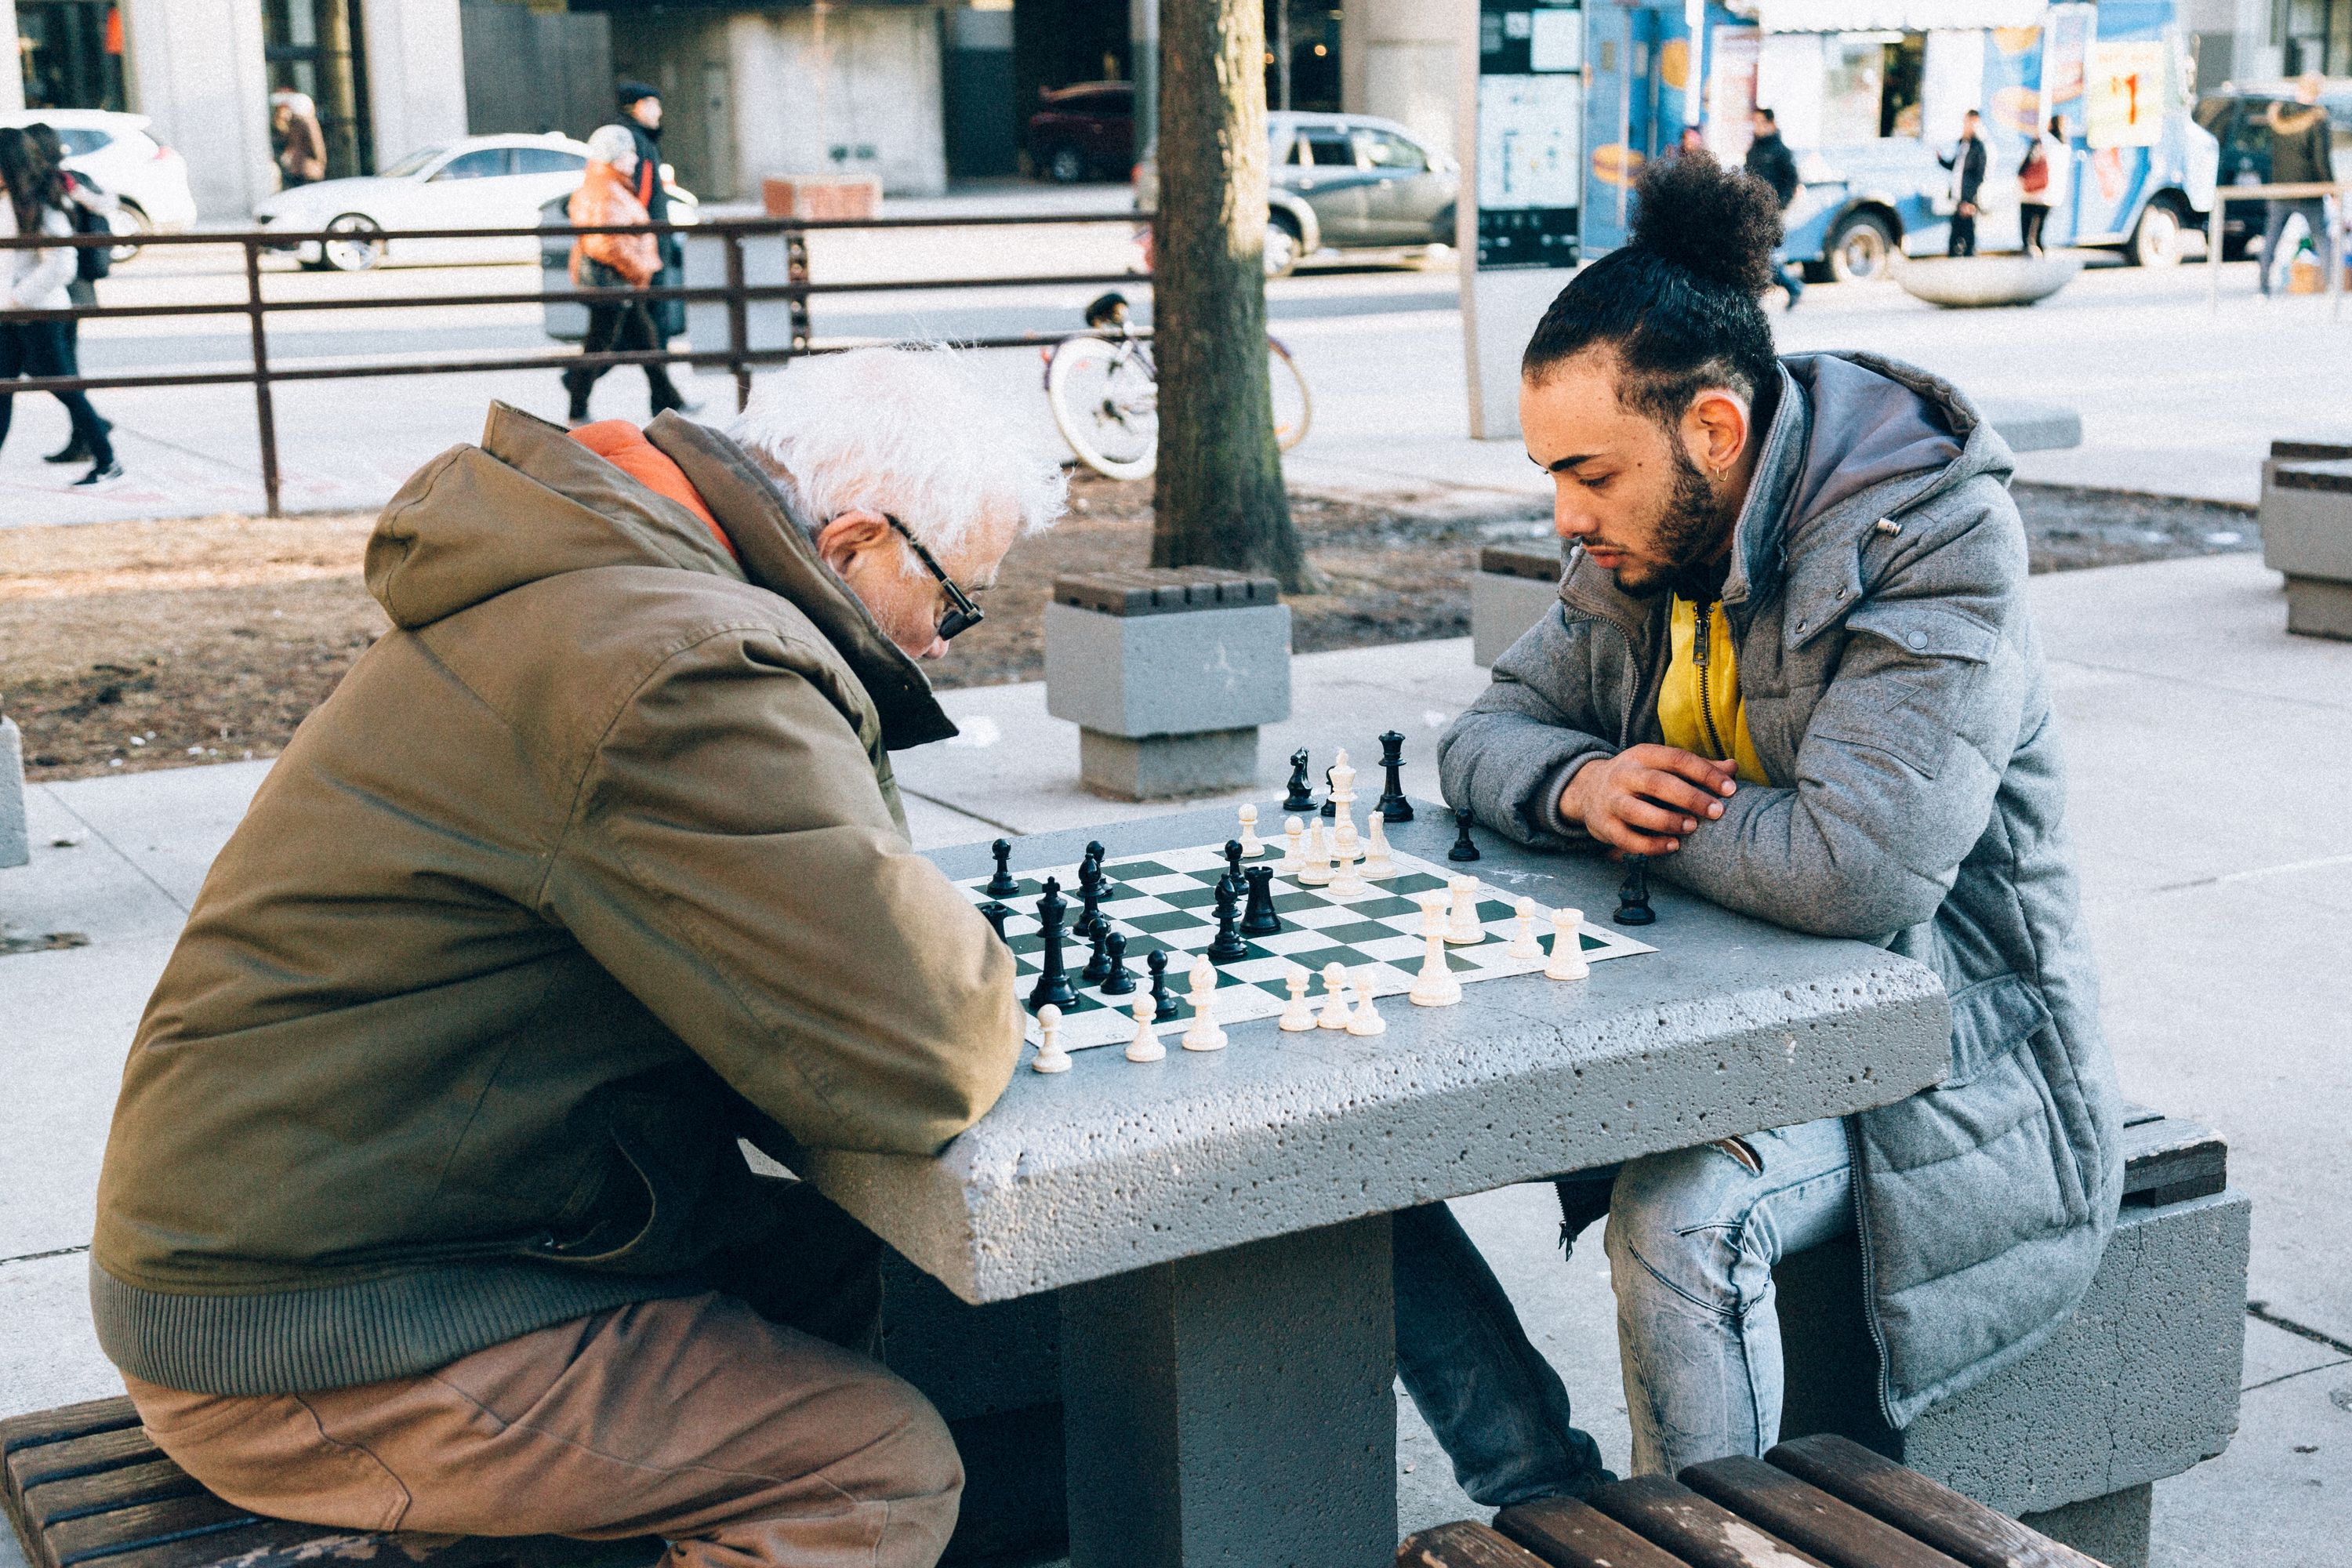 Teen Boy and Man Playing Chess